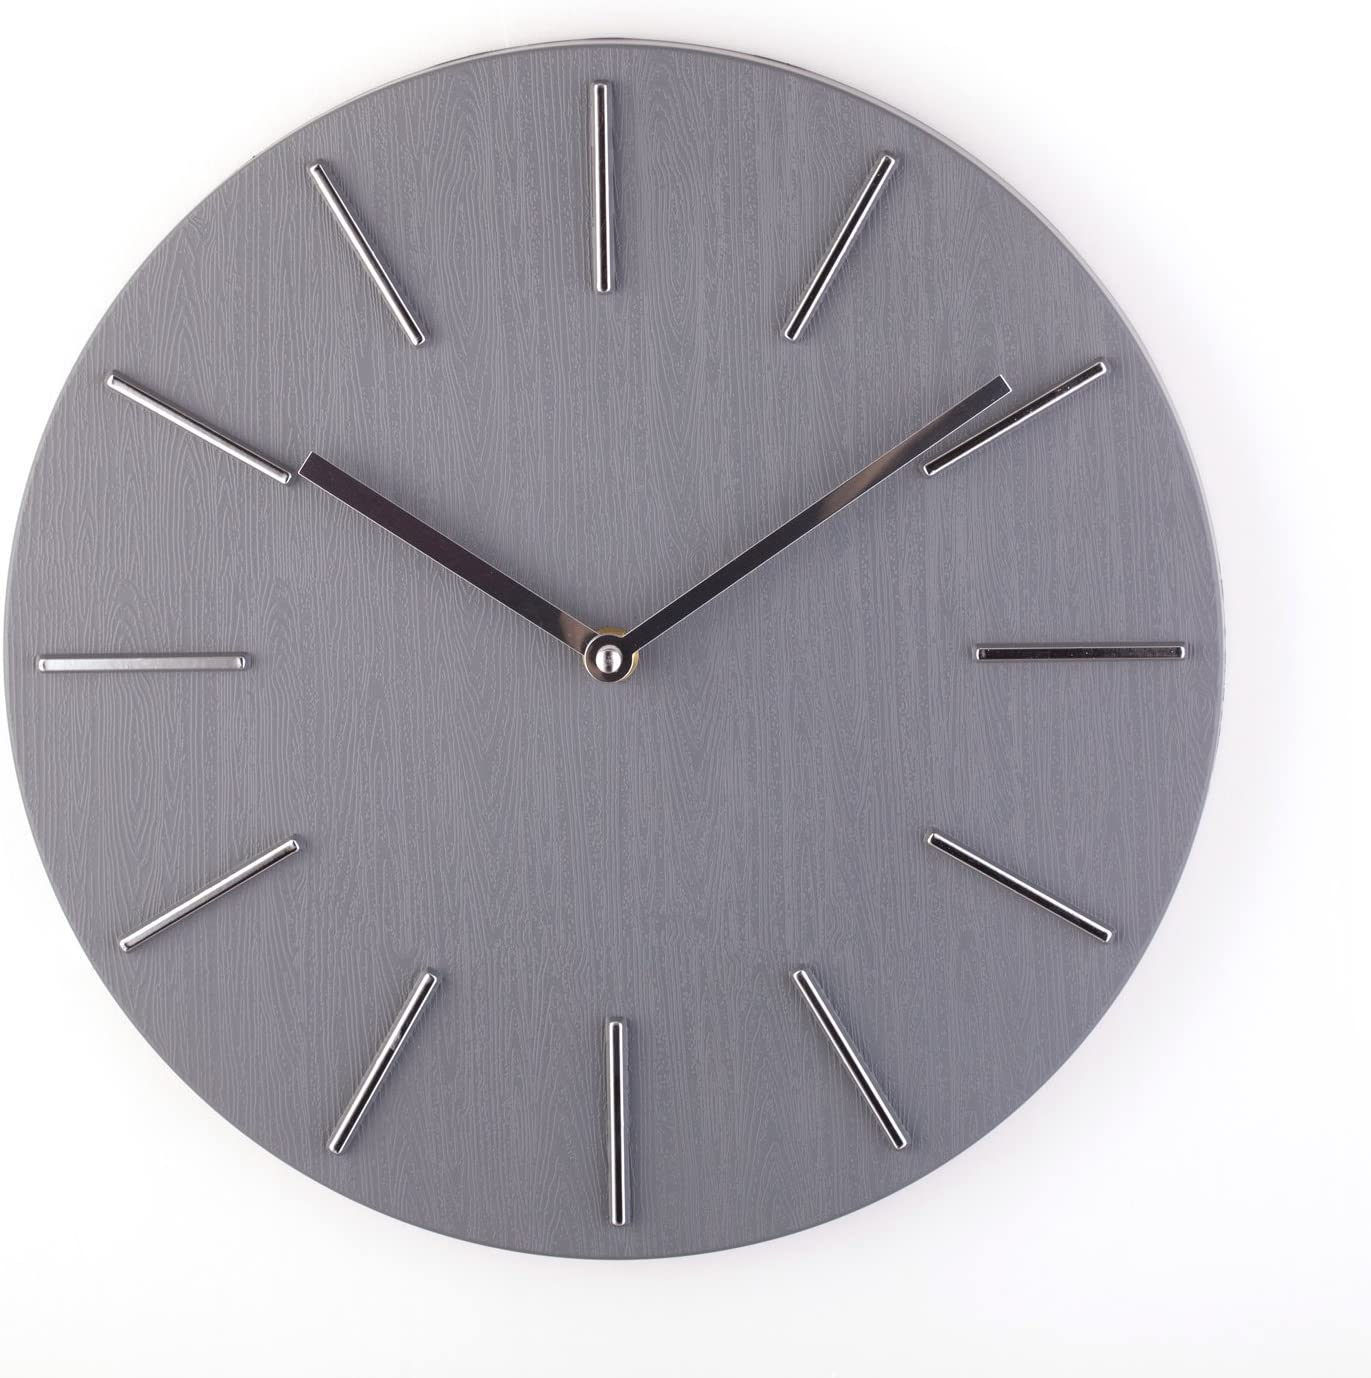 Bloom Flower 12 Inch Decorative Wall Clock Silent Non Ticking for Home, Office, School - Grey